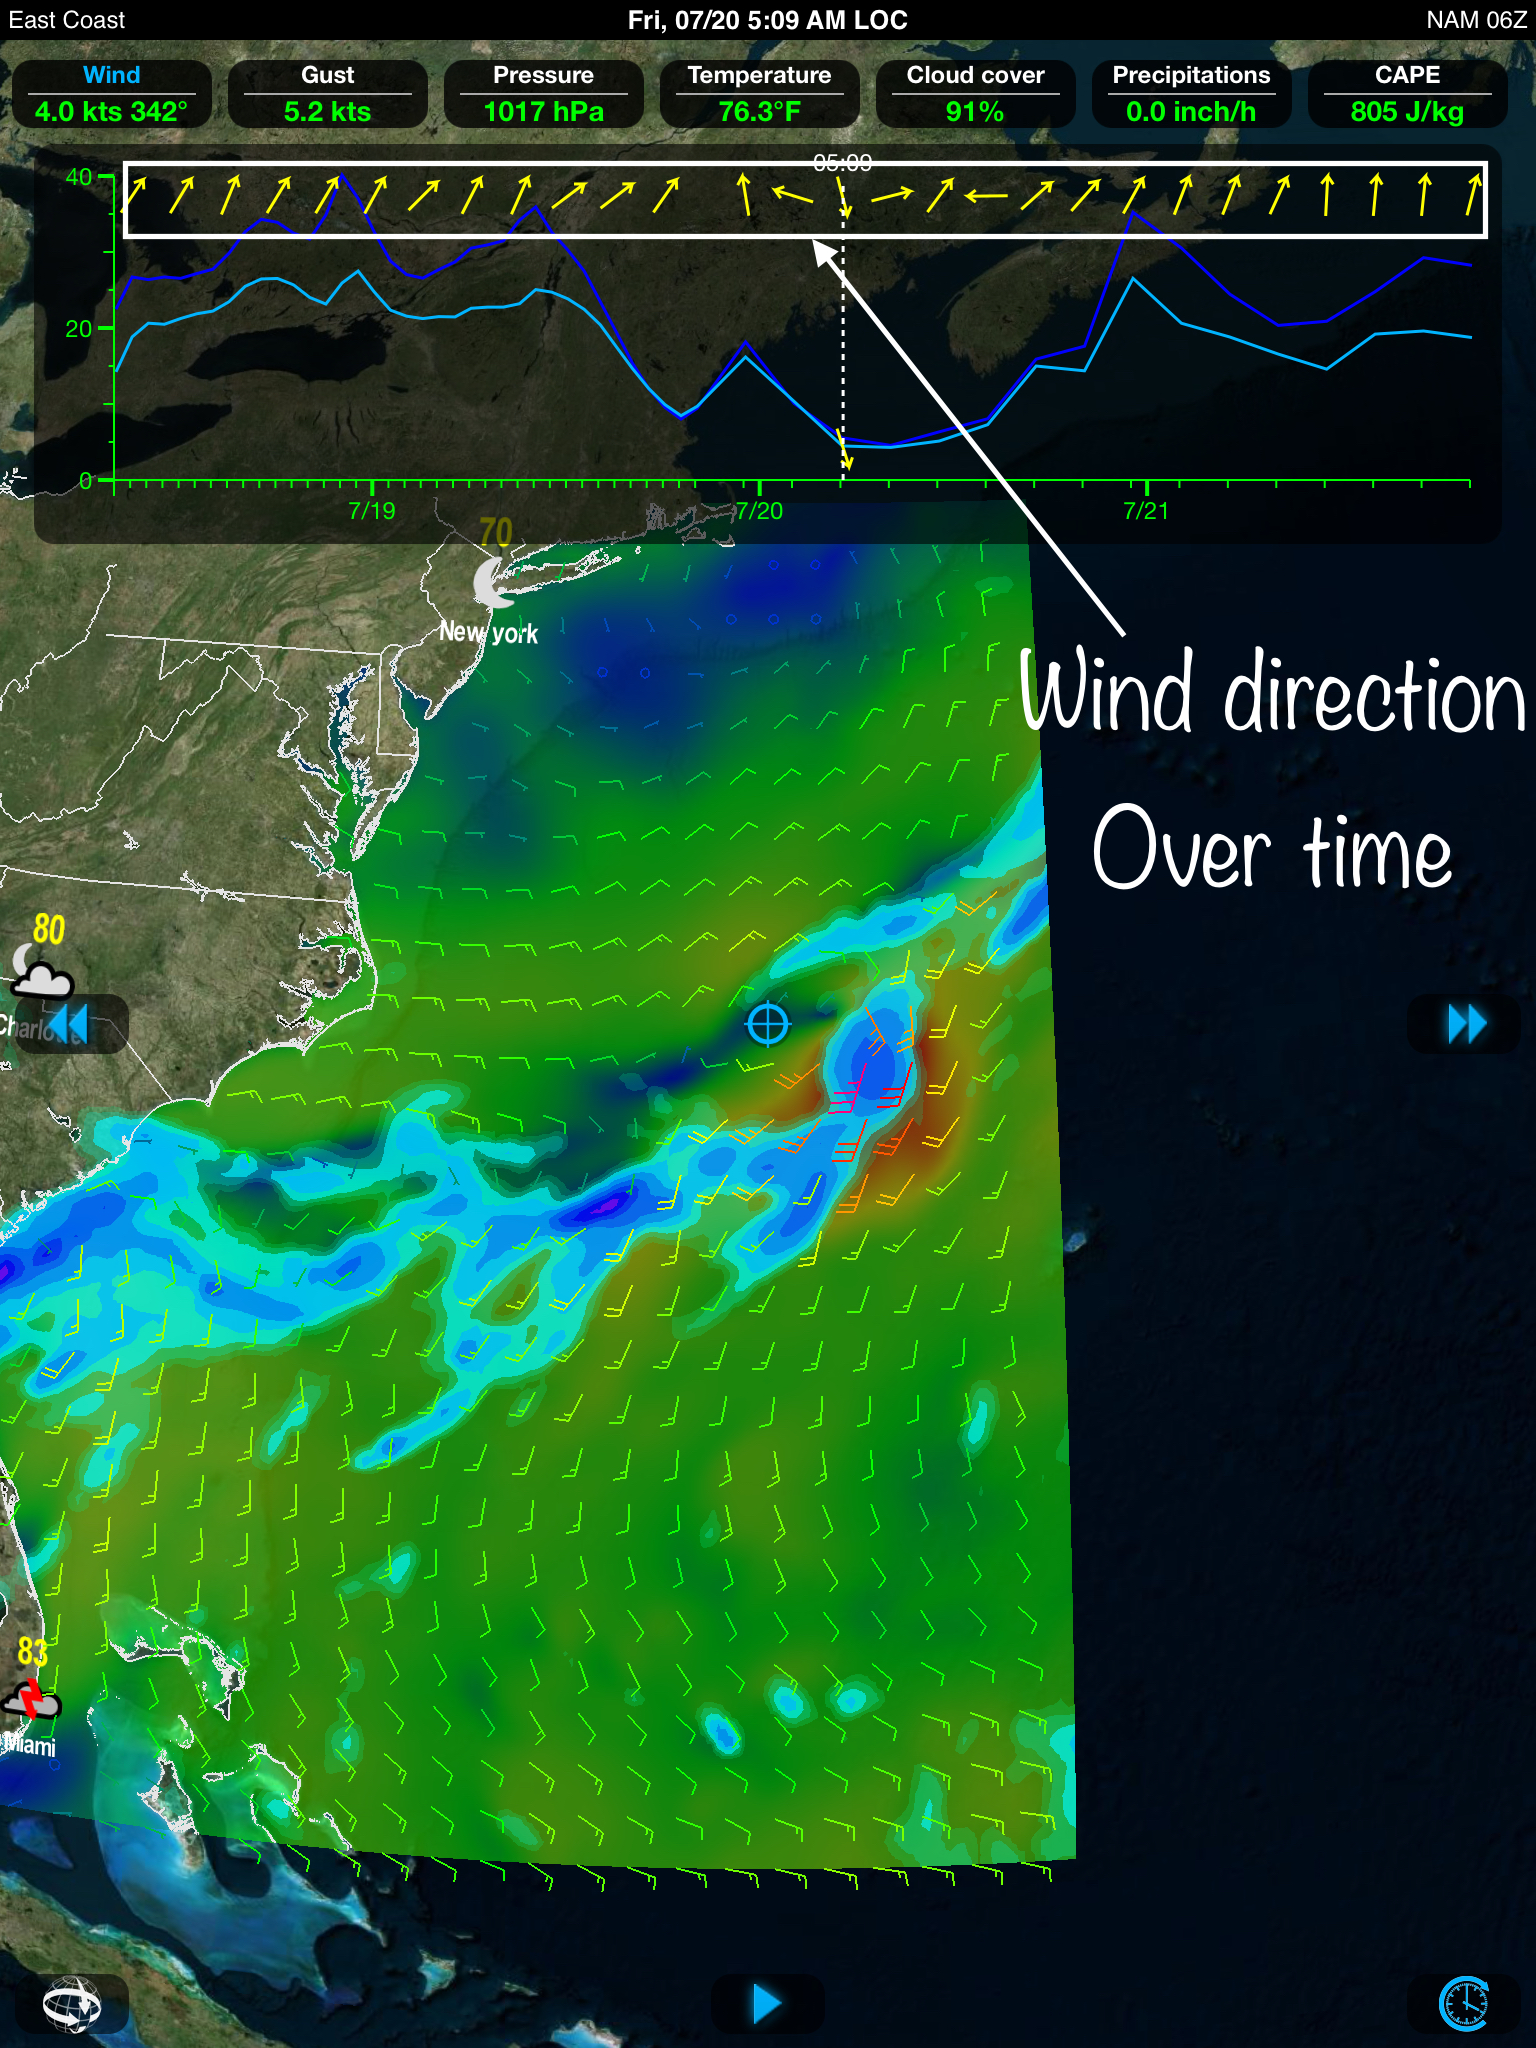 wind direction over time